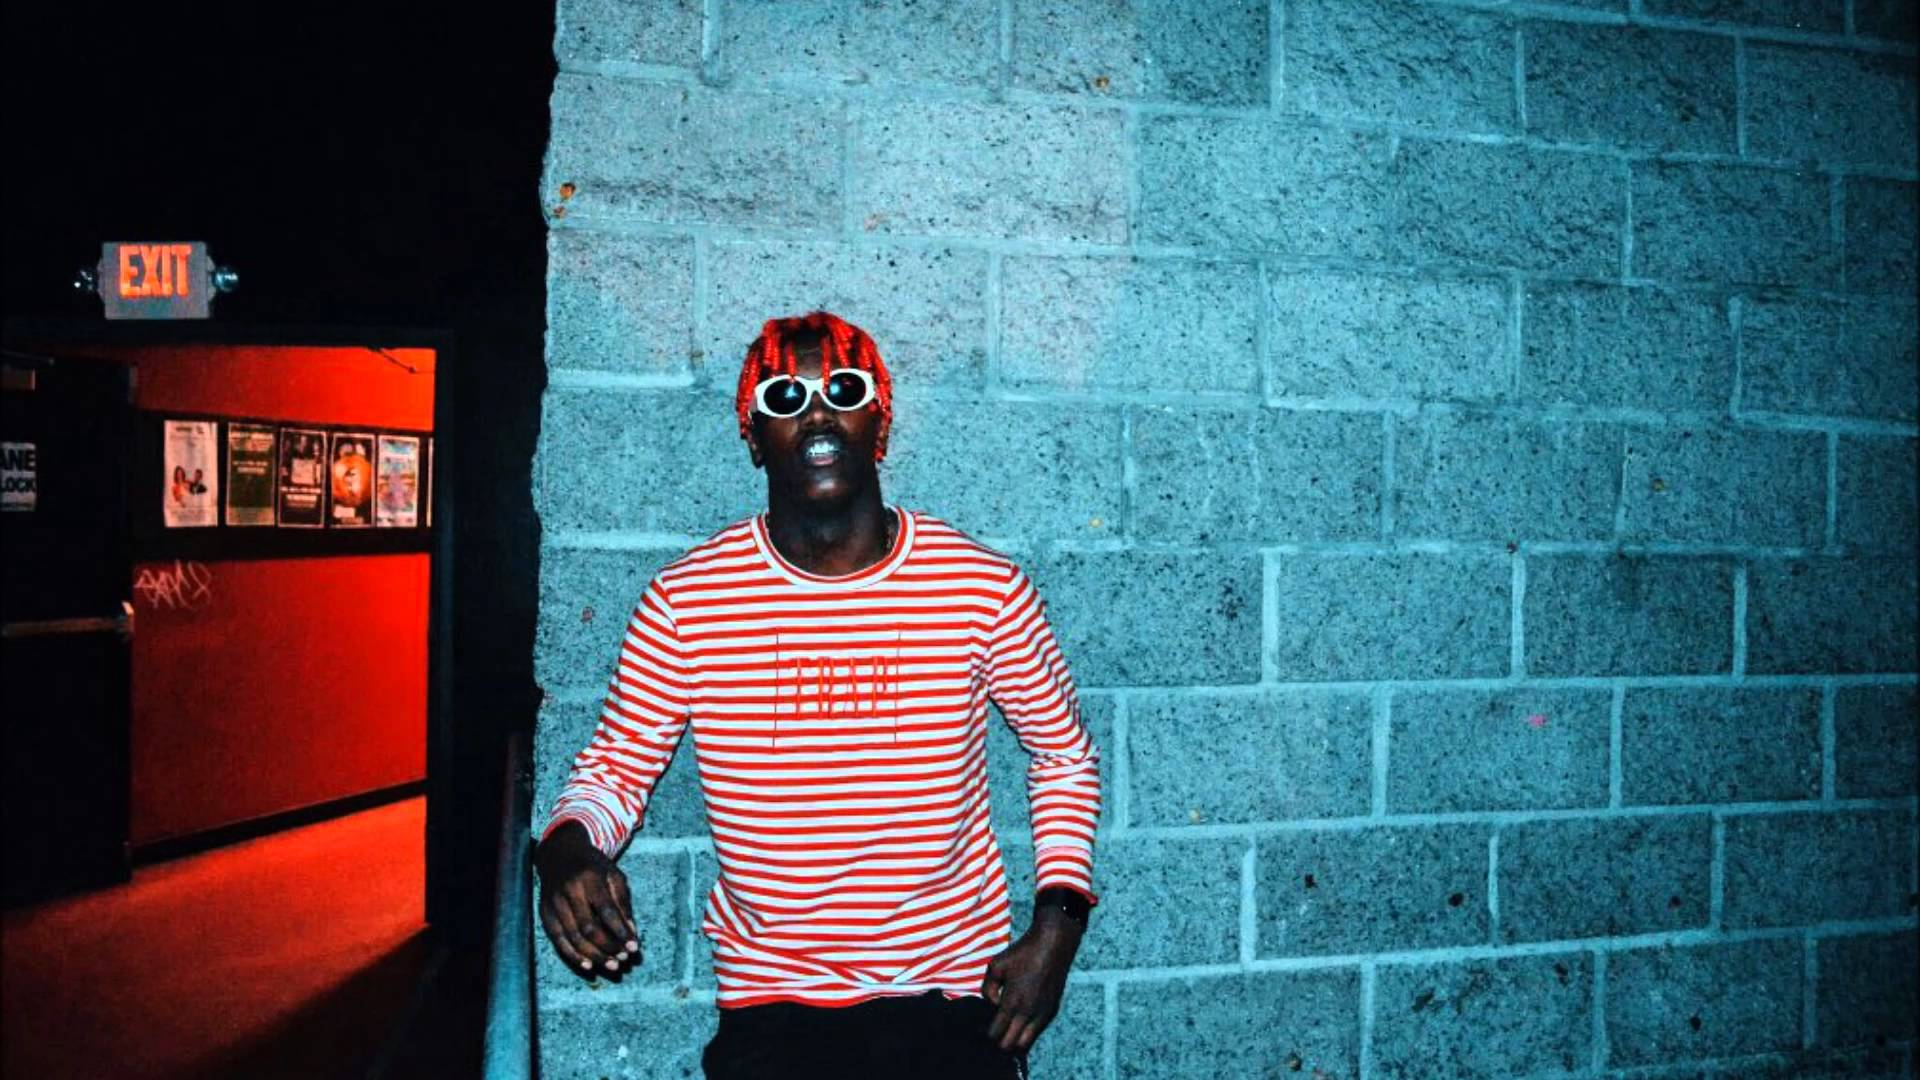 Lil Yachty Wallpapers 1920x1080